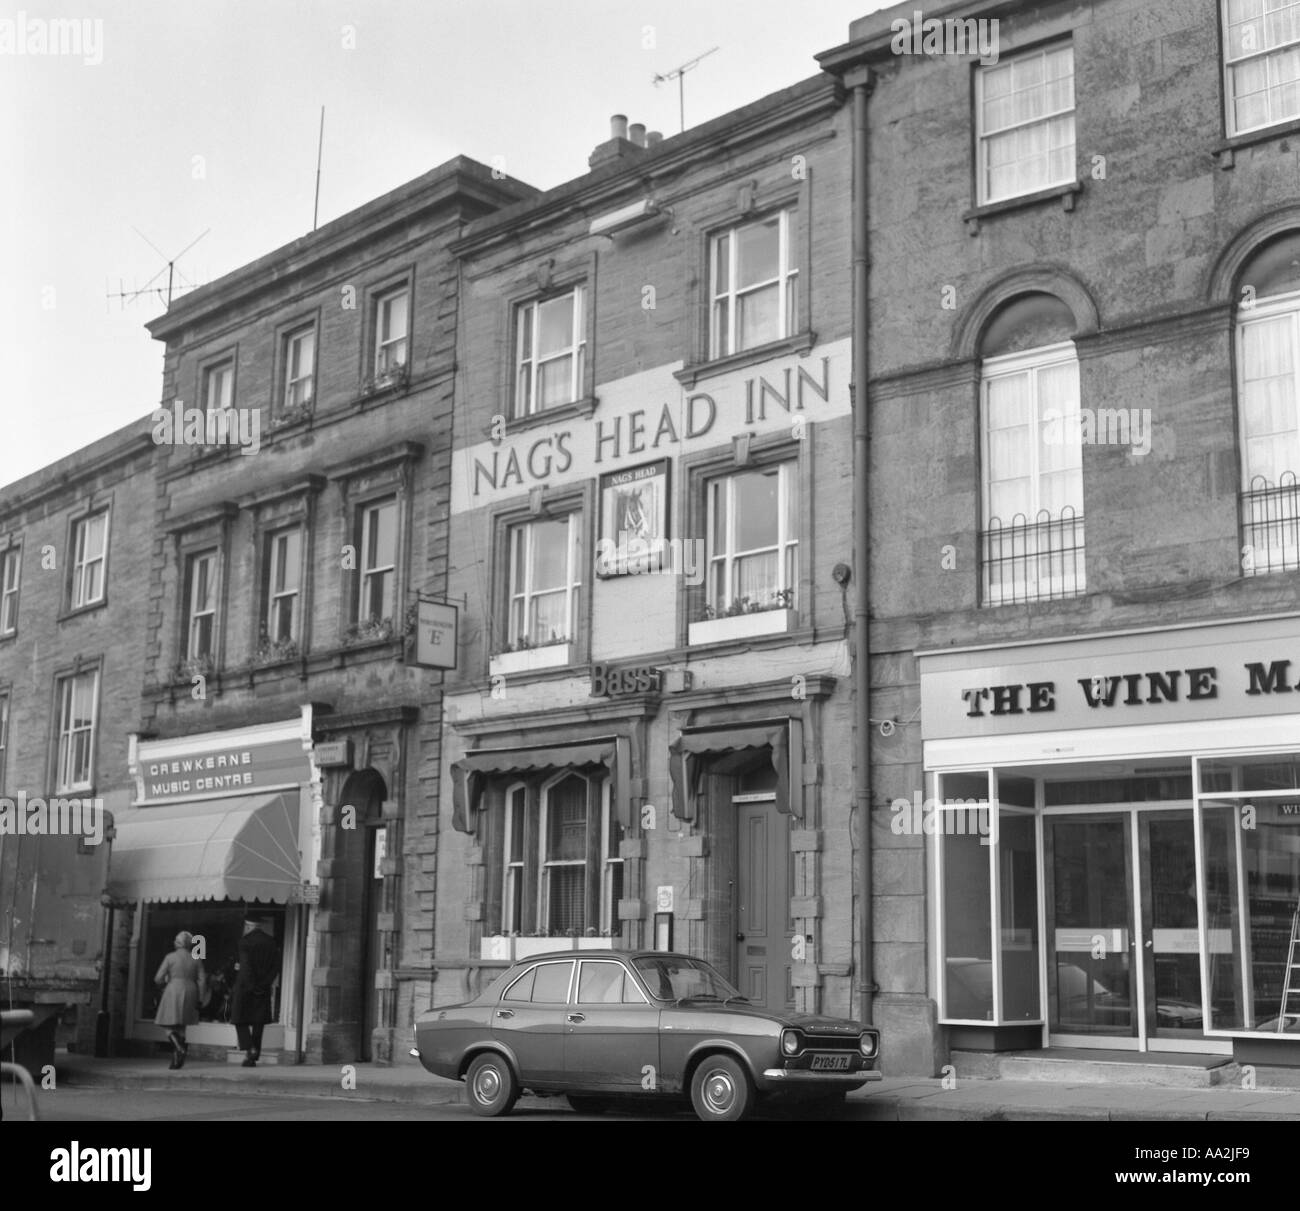 Nags Head Inn Crewkerne Somerset 1973 in 6x6 number 0038 - Stock Image